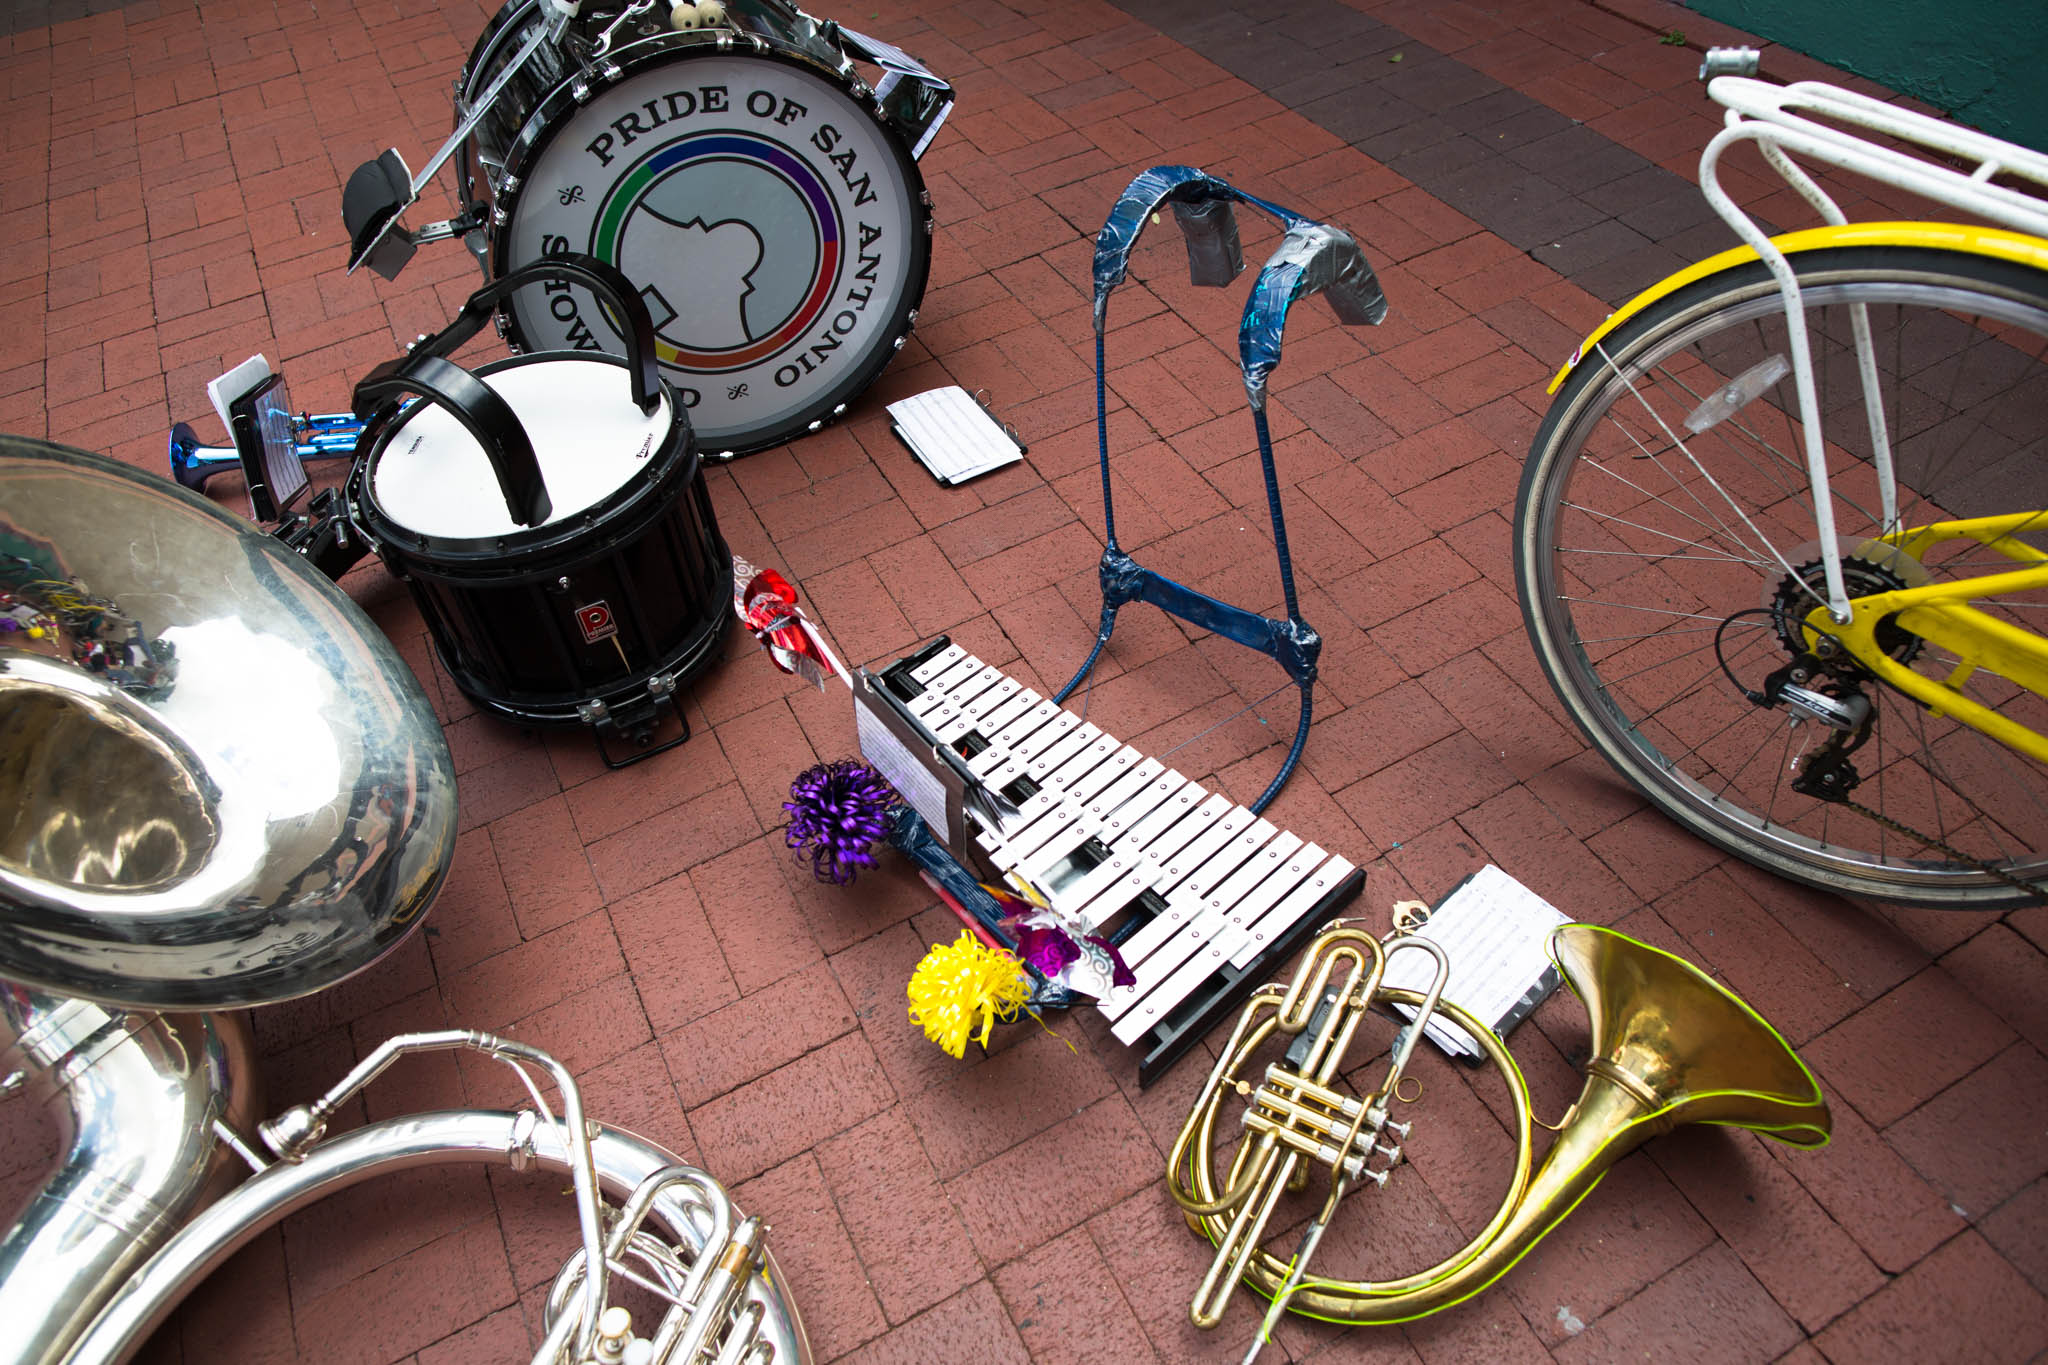 The Pride of San Antonio Showband instruments at intermission. Photo by Michael Cirlos.